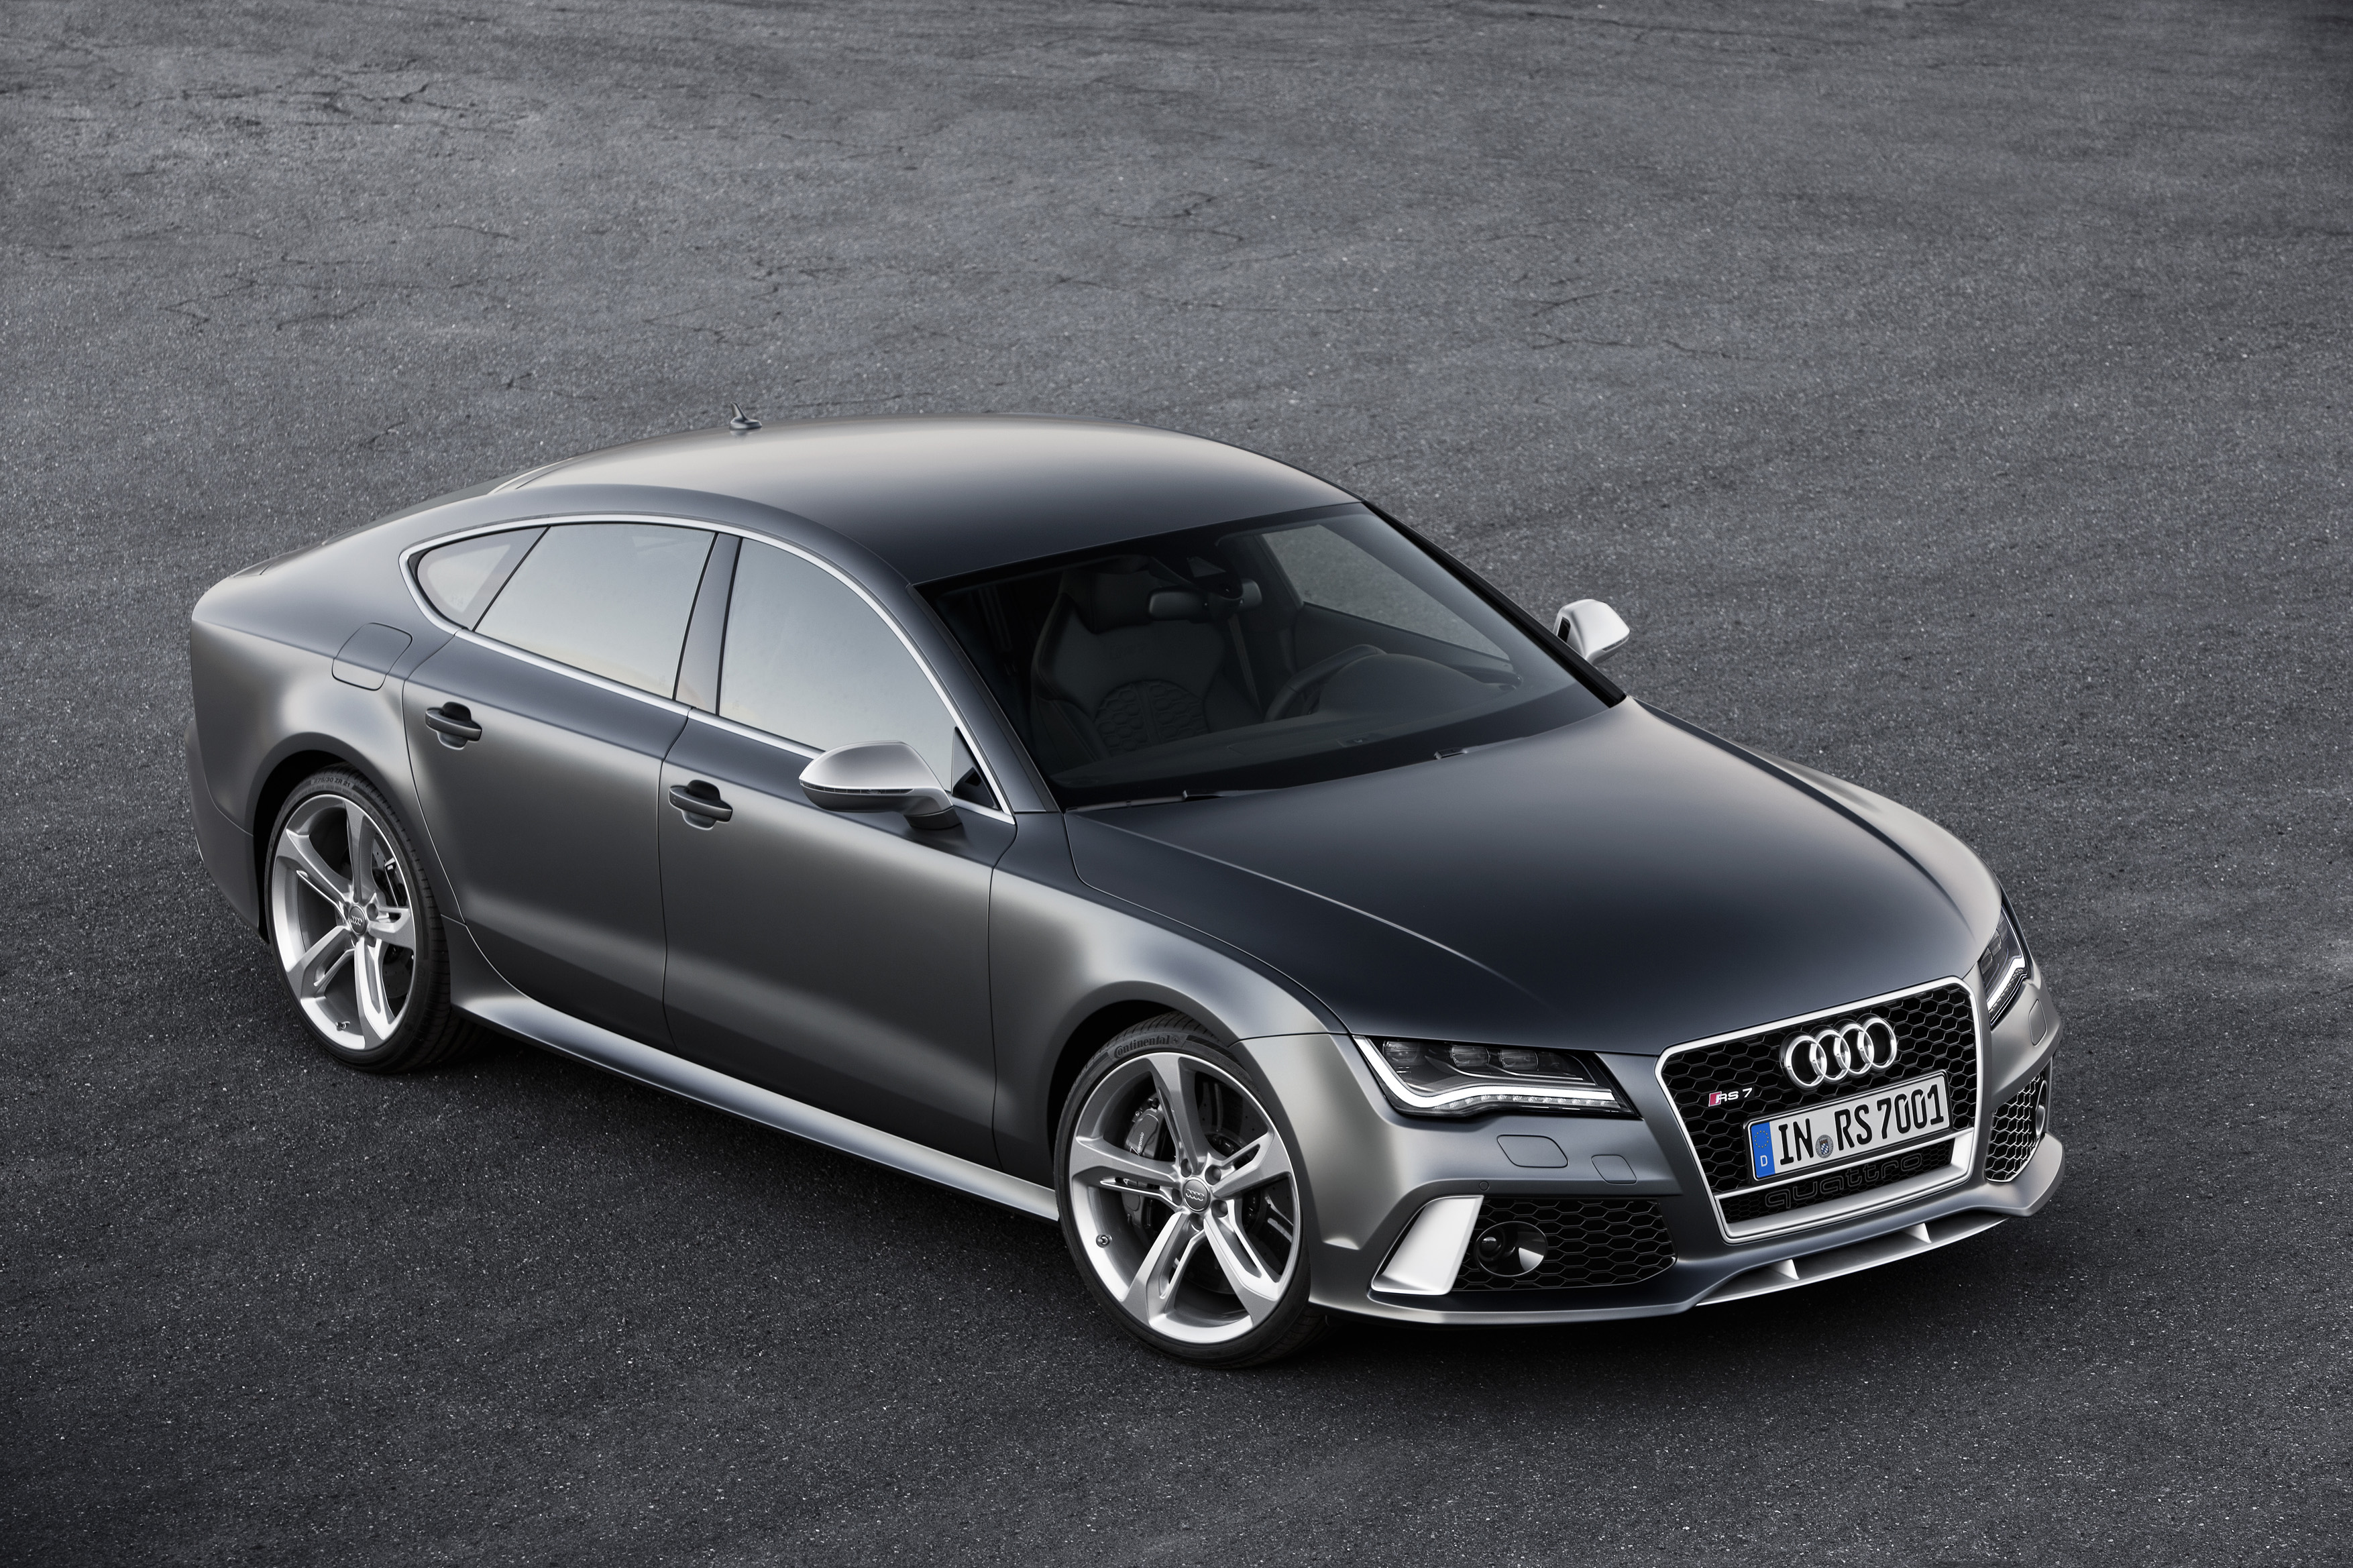 Audi Rs 7 Photos, Informations, Articles - BestCarMag.com